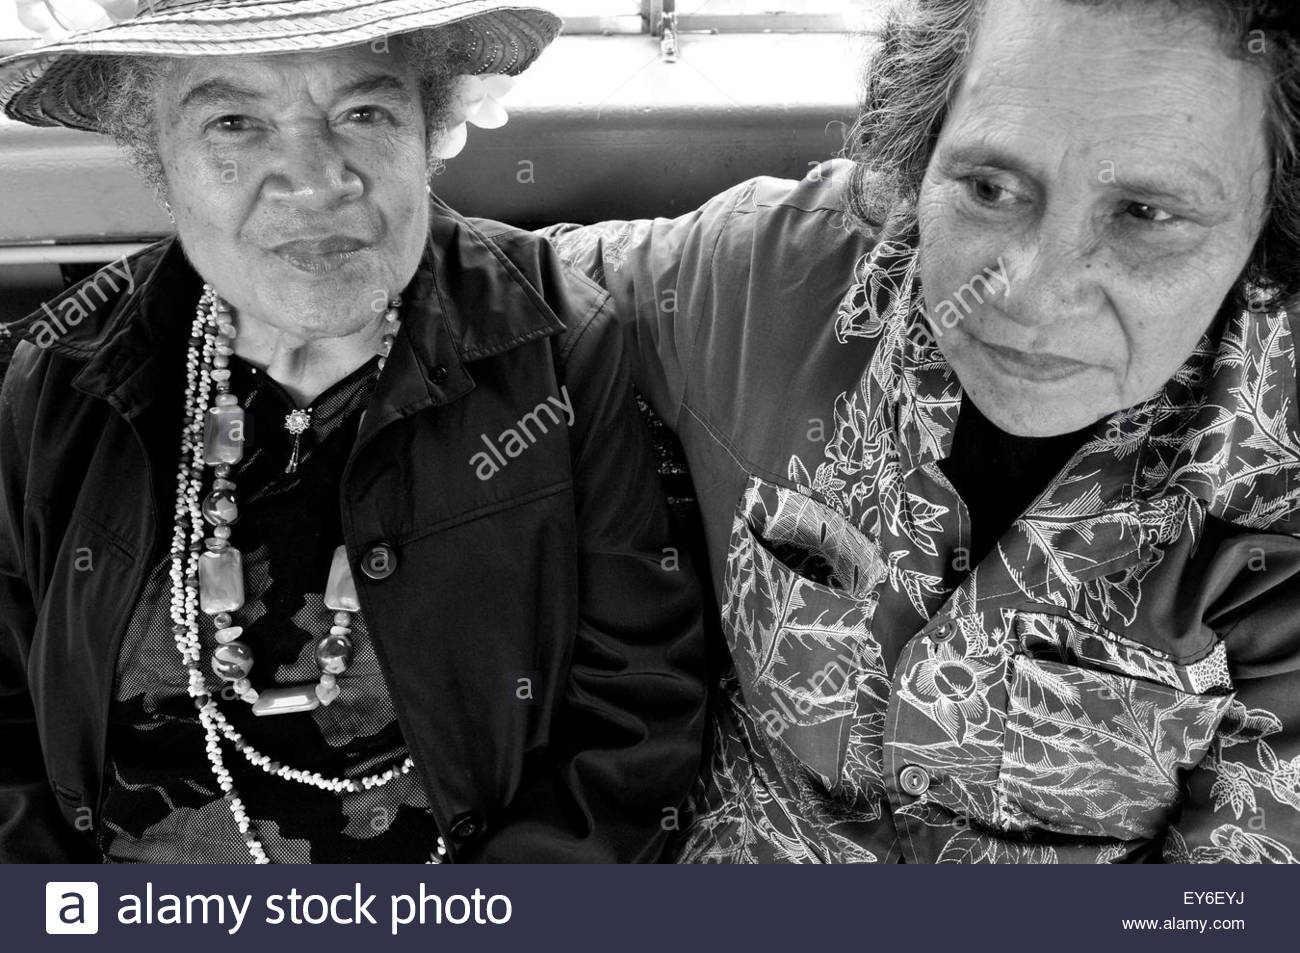 Portrait of two Maori women sitting on a bench in downtown Auckland, North Island, New Zealand Stock Photo